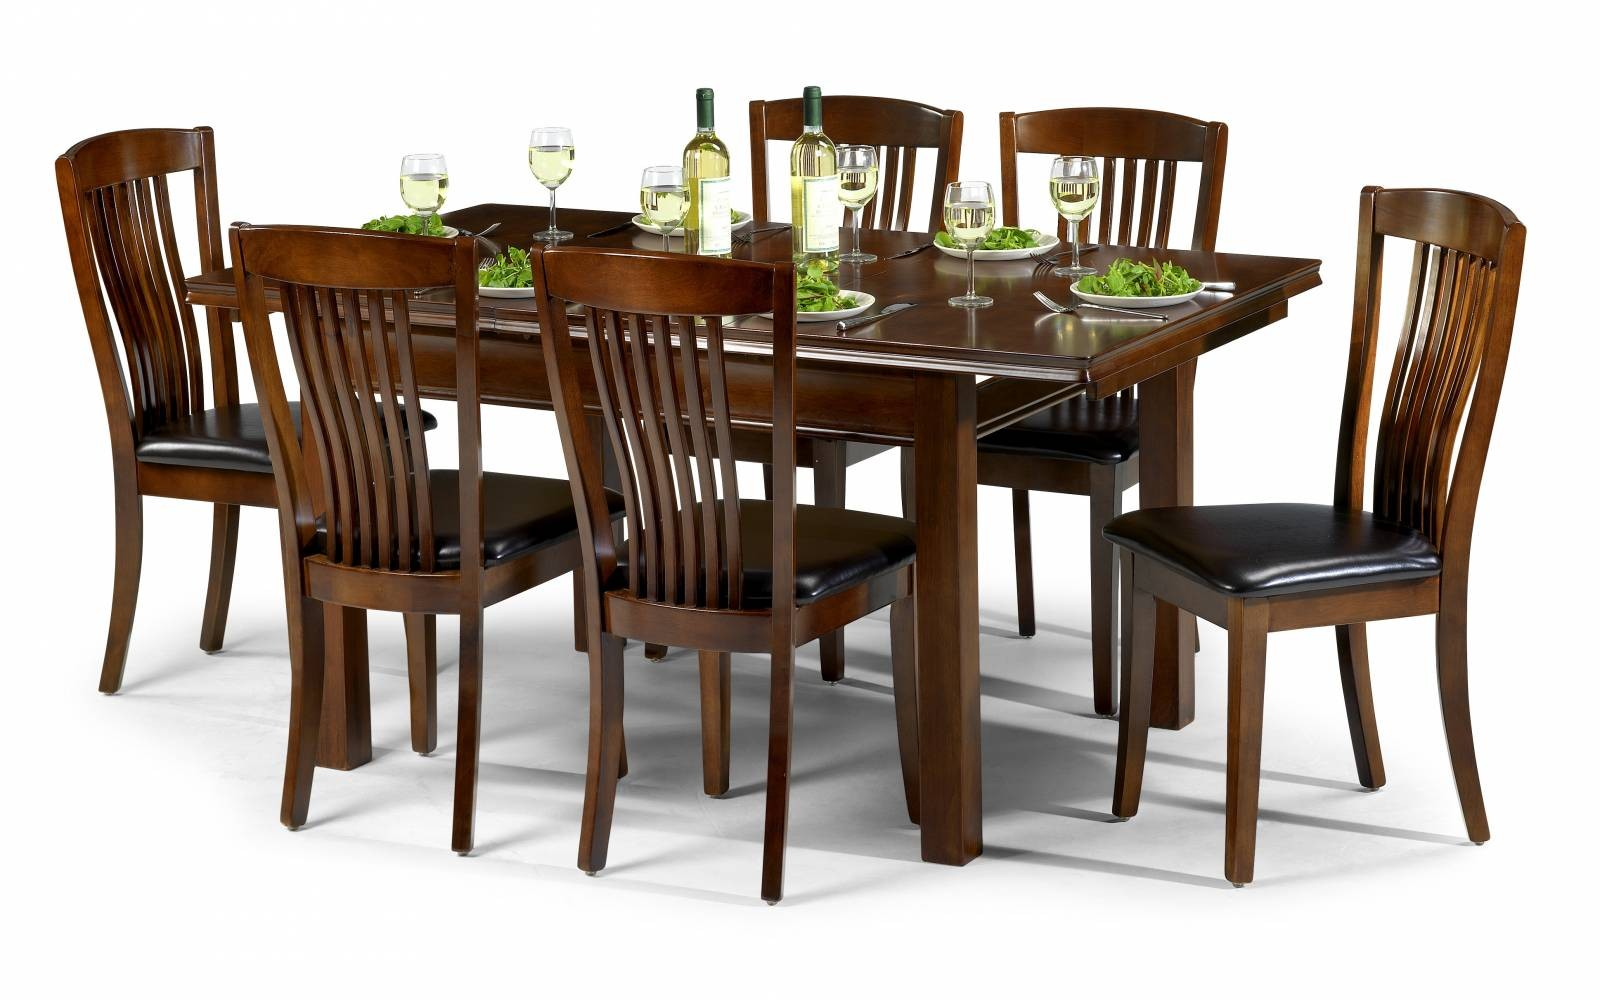 https://www.firstfurniture.co.uk/pub/media/catalog/product/c/a/can001_1_can002_4_.jpg